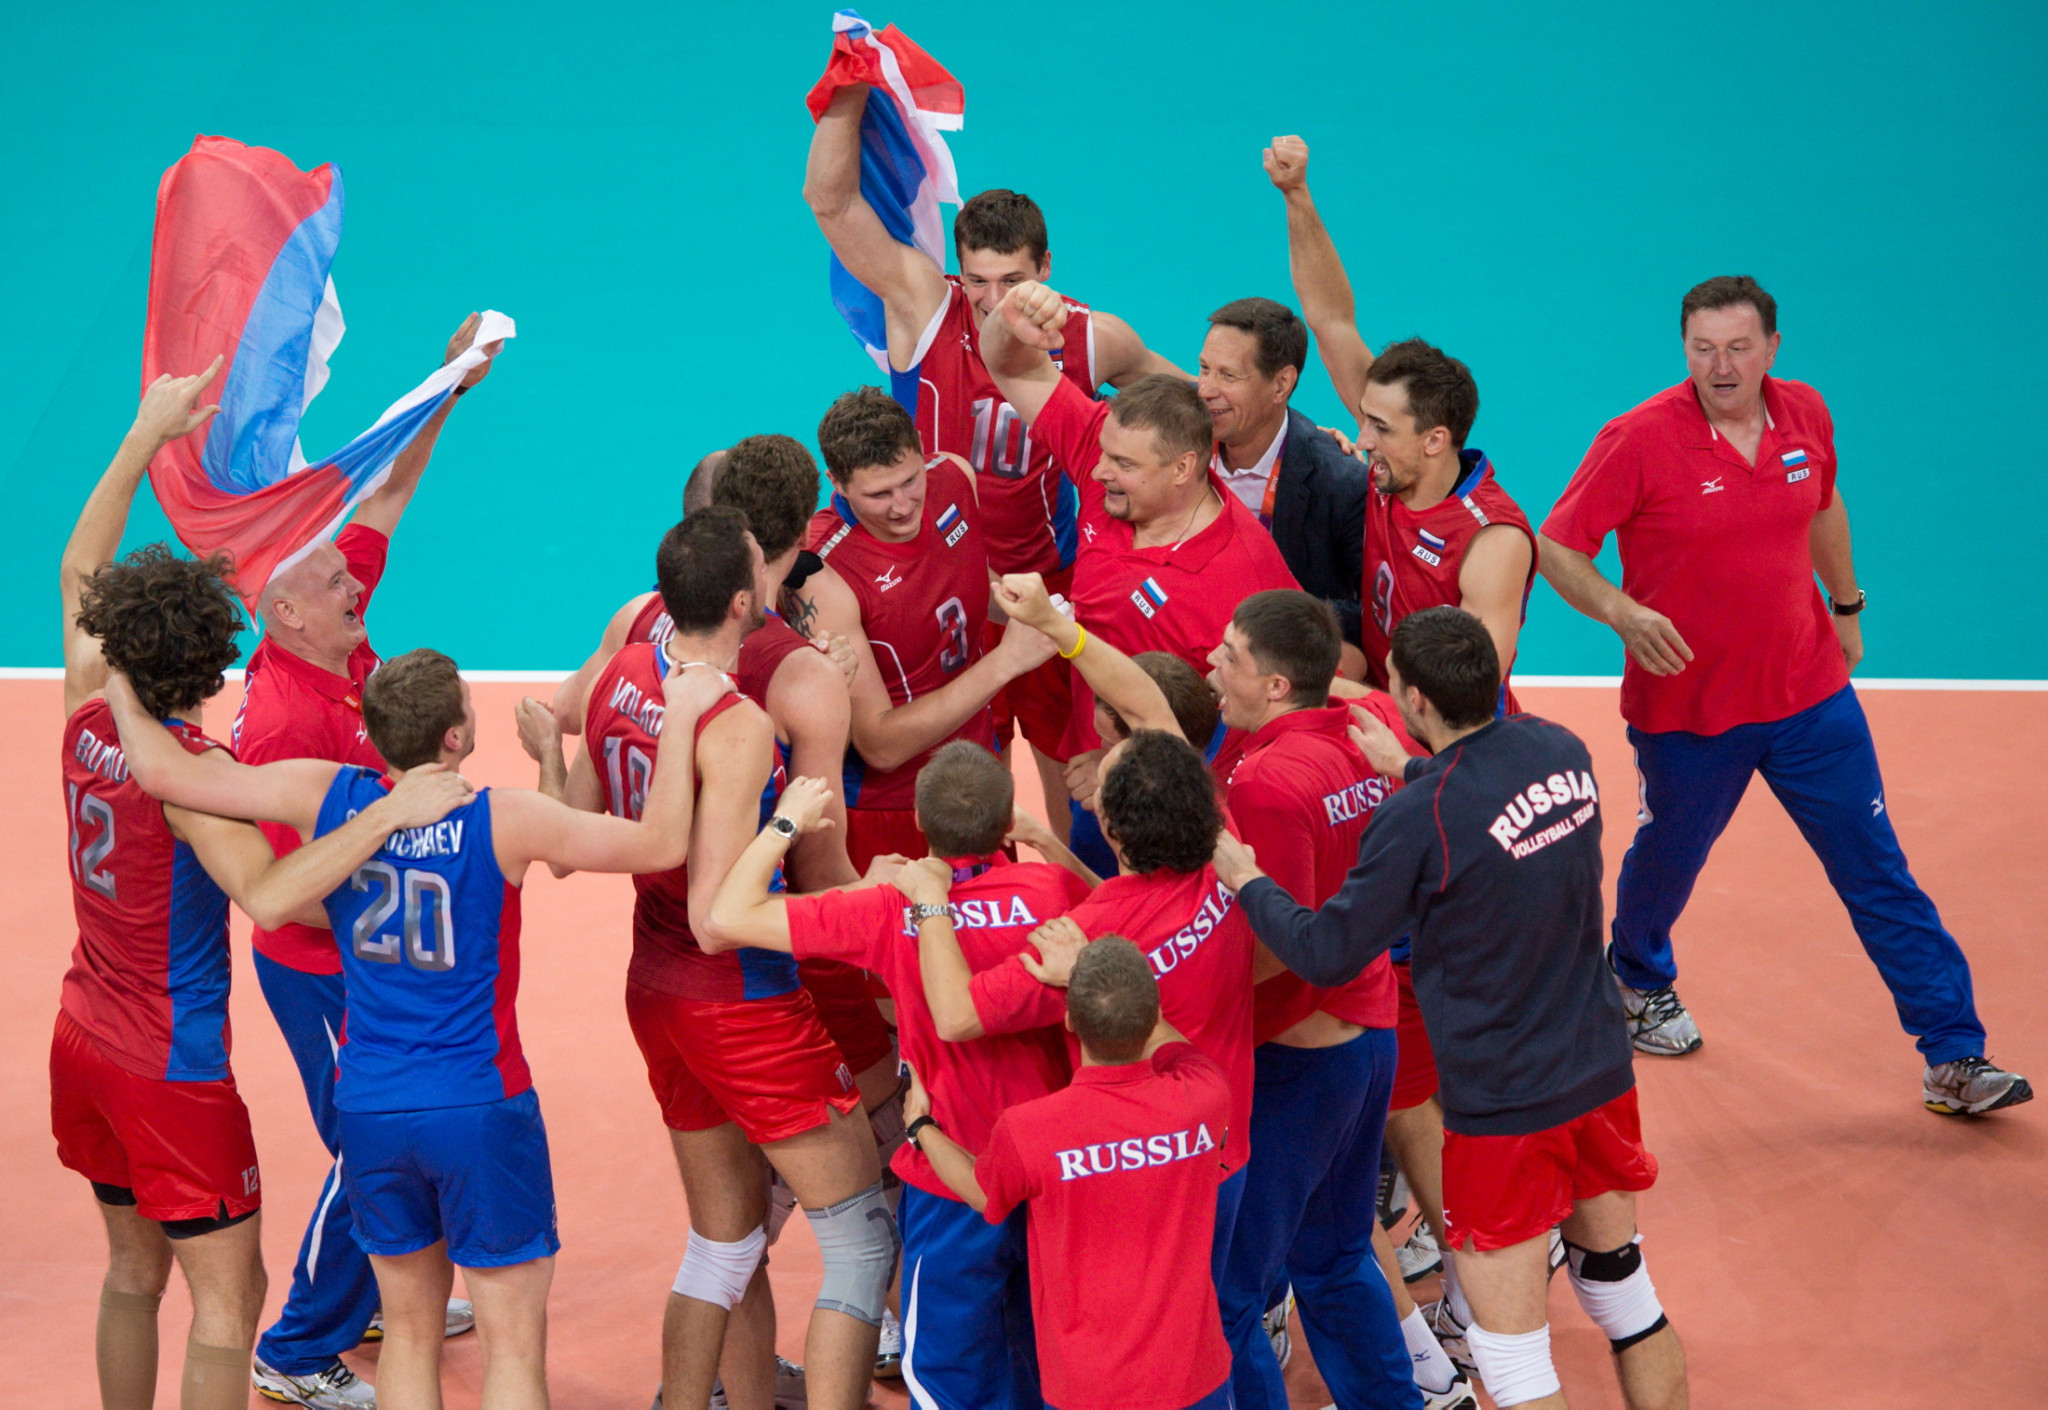 Volleyball has grown in popularity in Russia in recent years, the FIVB claim, thanks to the success of the men's team, including winning the Olympic gold medal at London 2012 ©FIVB